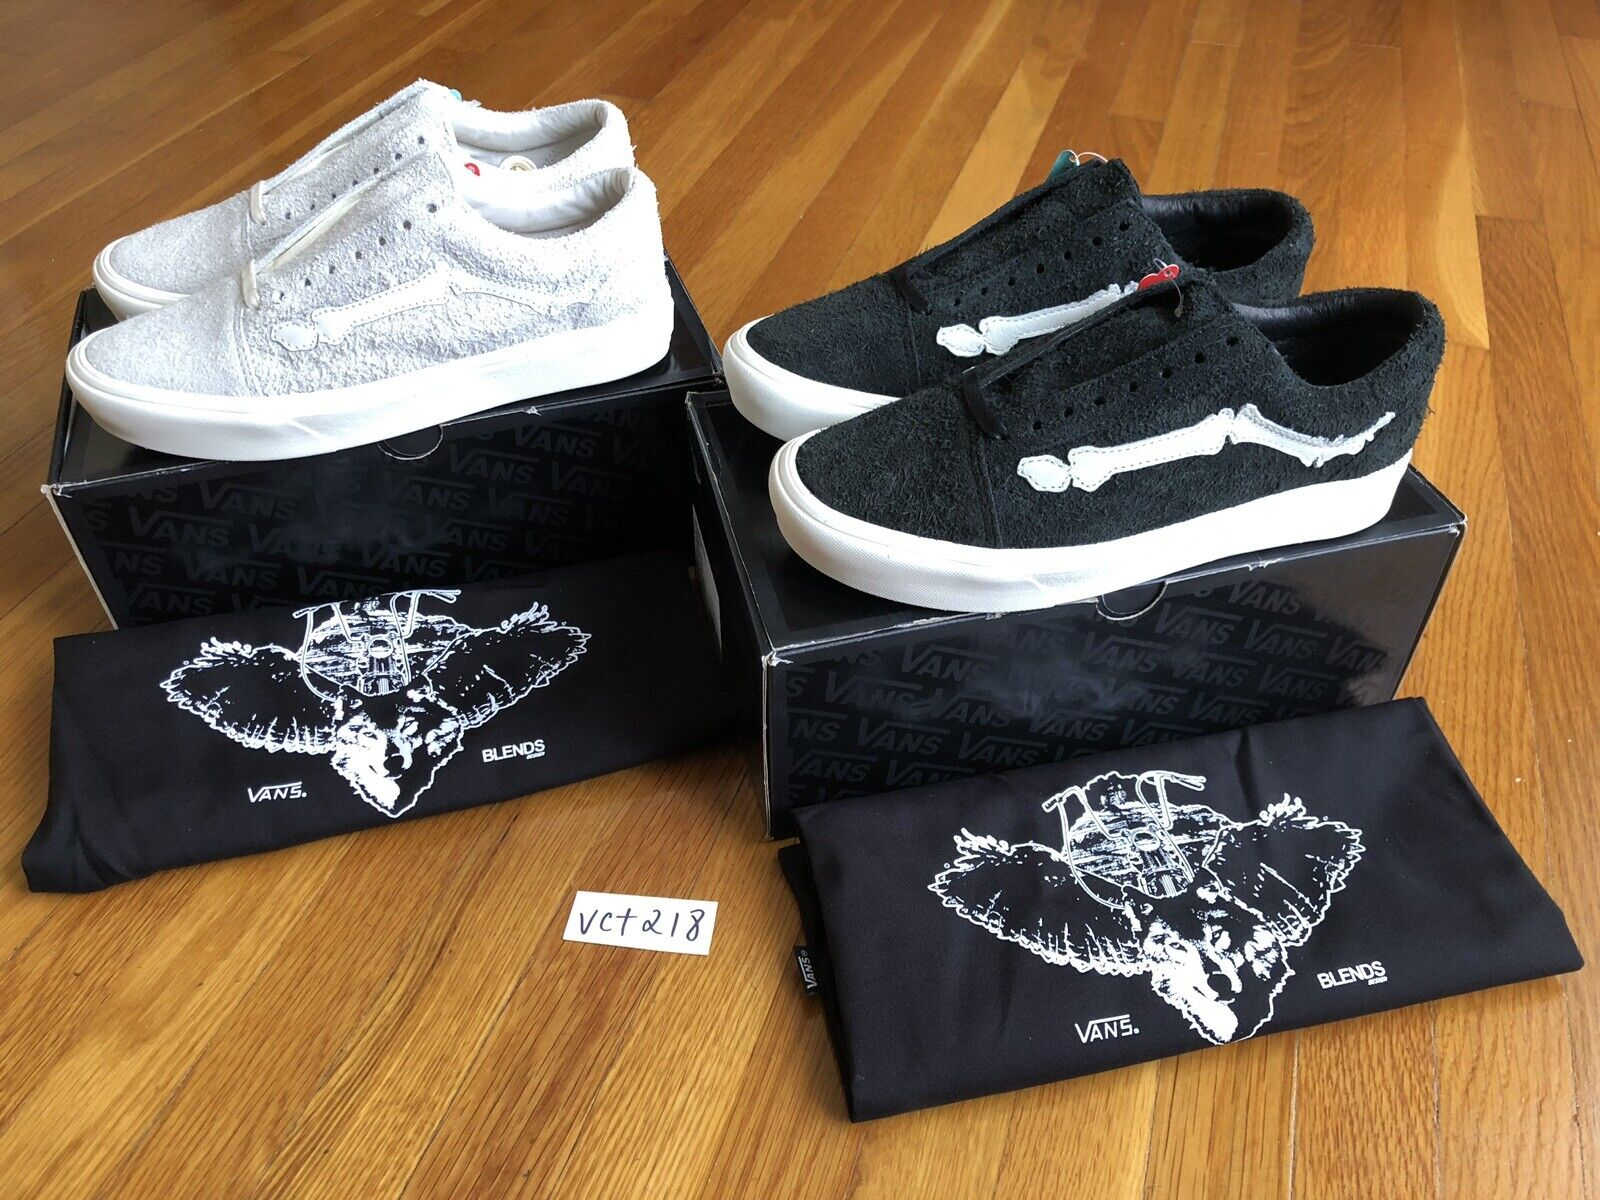 Blends x Vans Comfycush Old Skool Bones Dimensione US 8 nero and Marshmallow SET